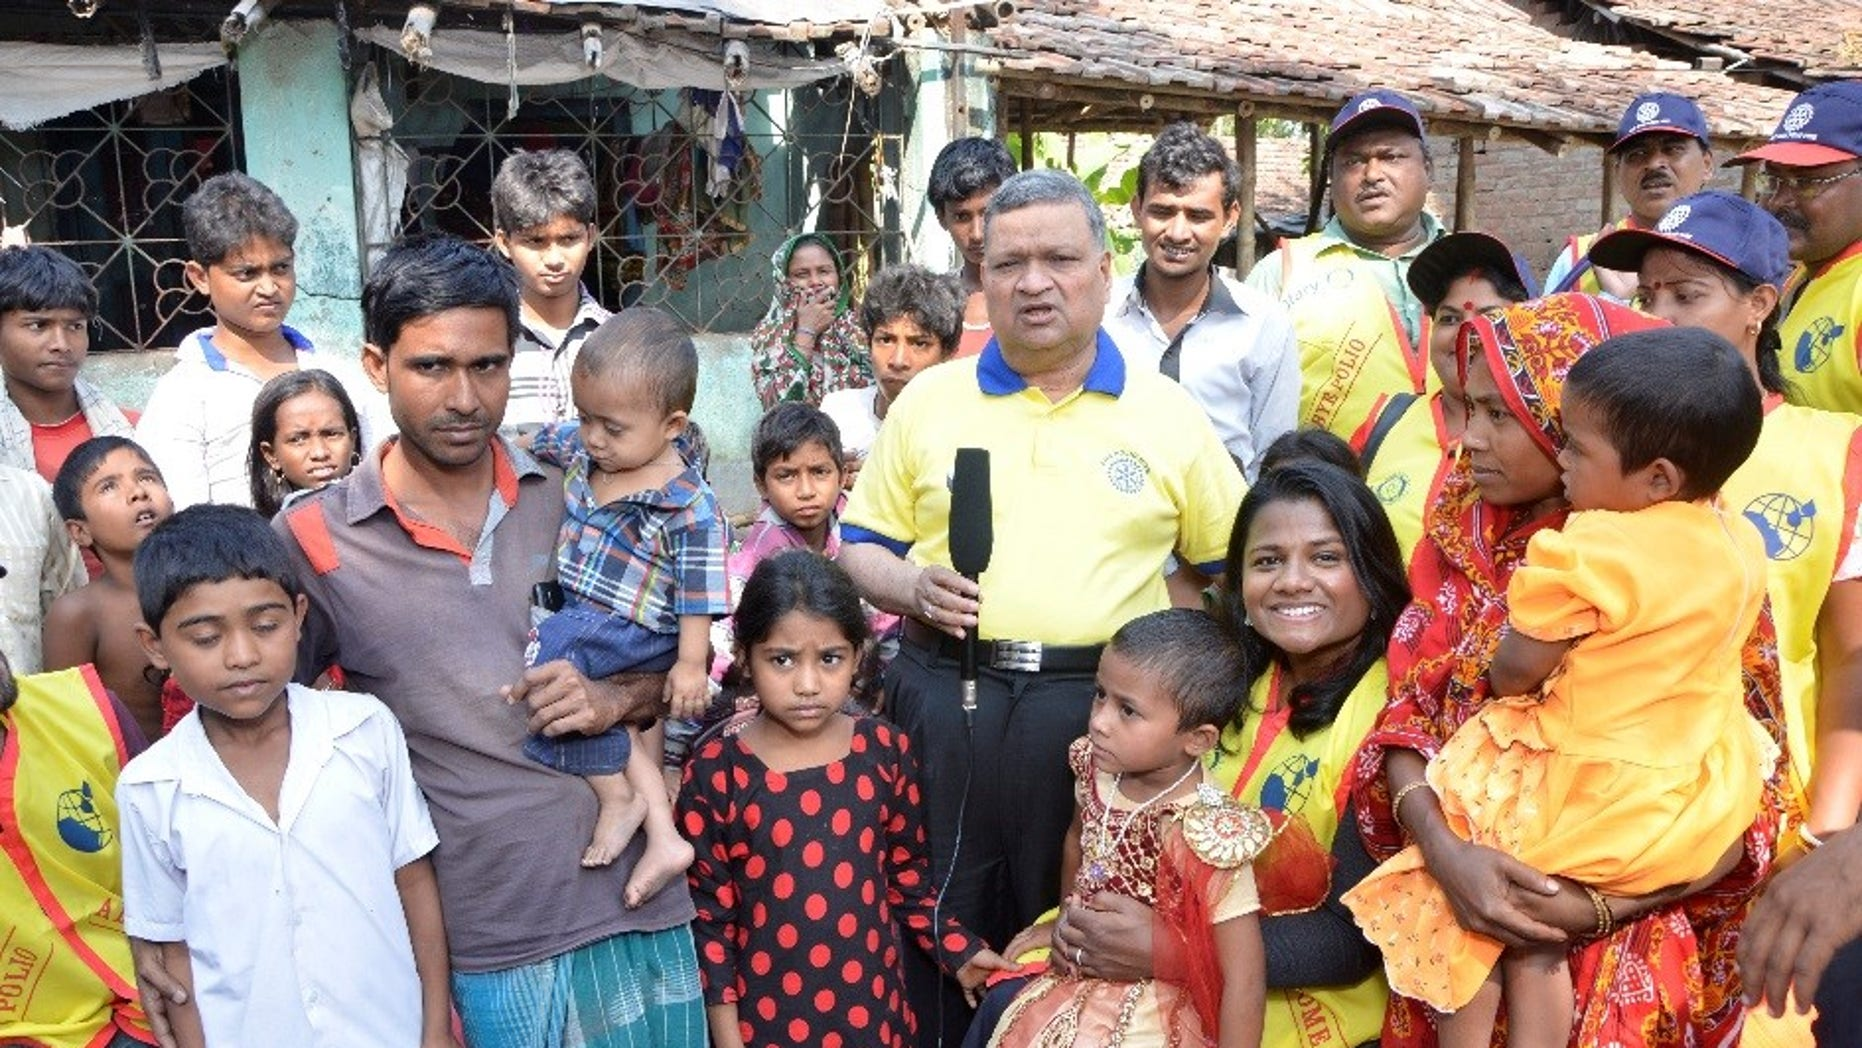 Rukhsar Khatoon with family.  The last polio case in India was reported in 2011 and India was declared polio-free in 2014. This is Rukhsar and her family.